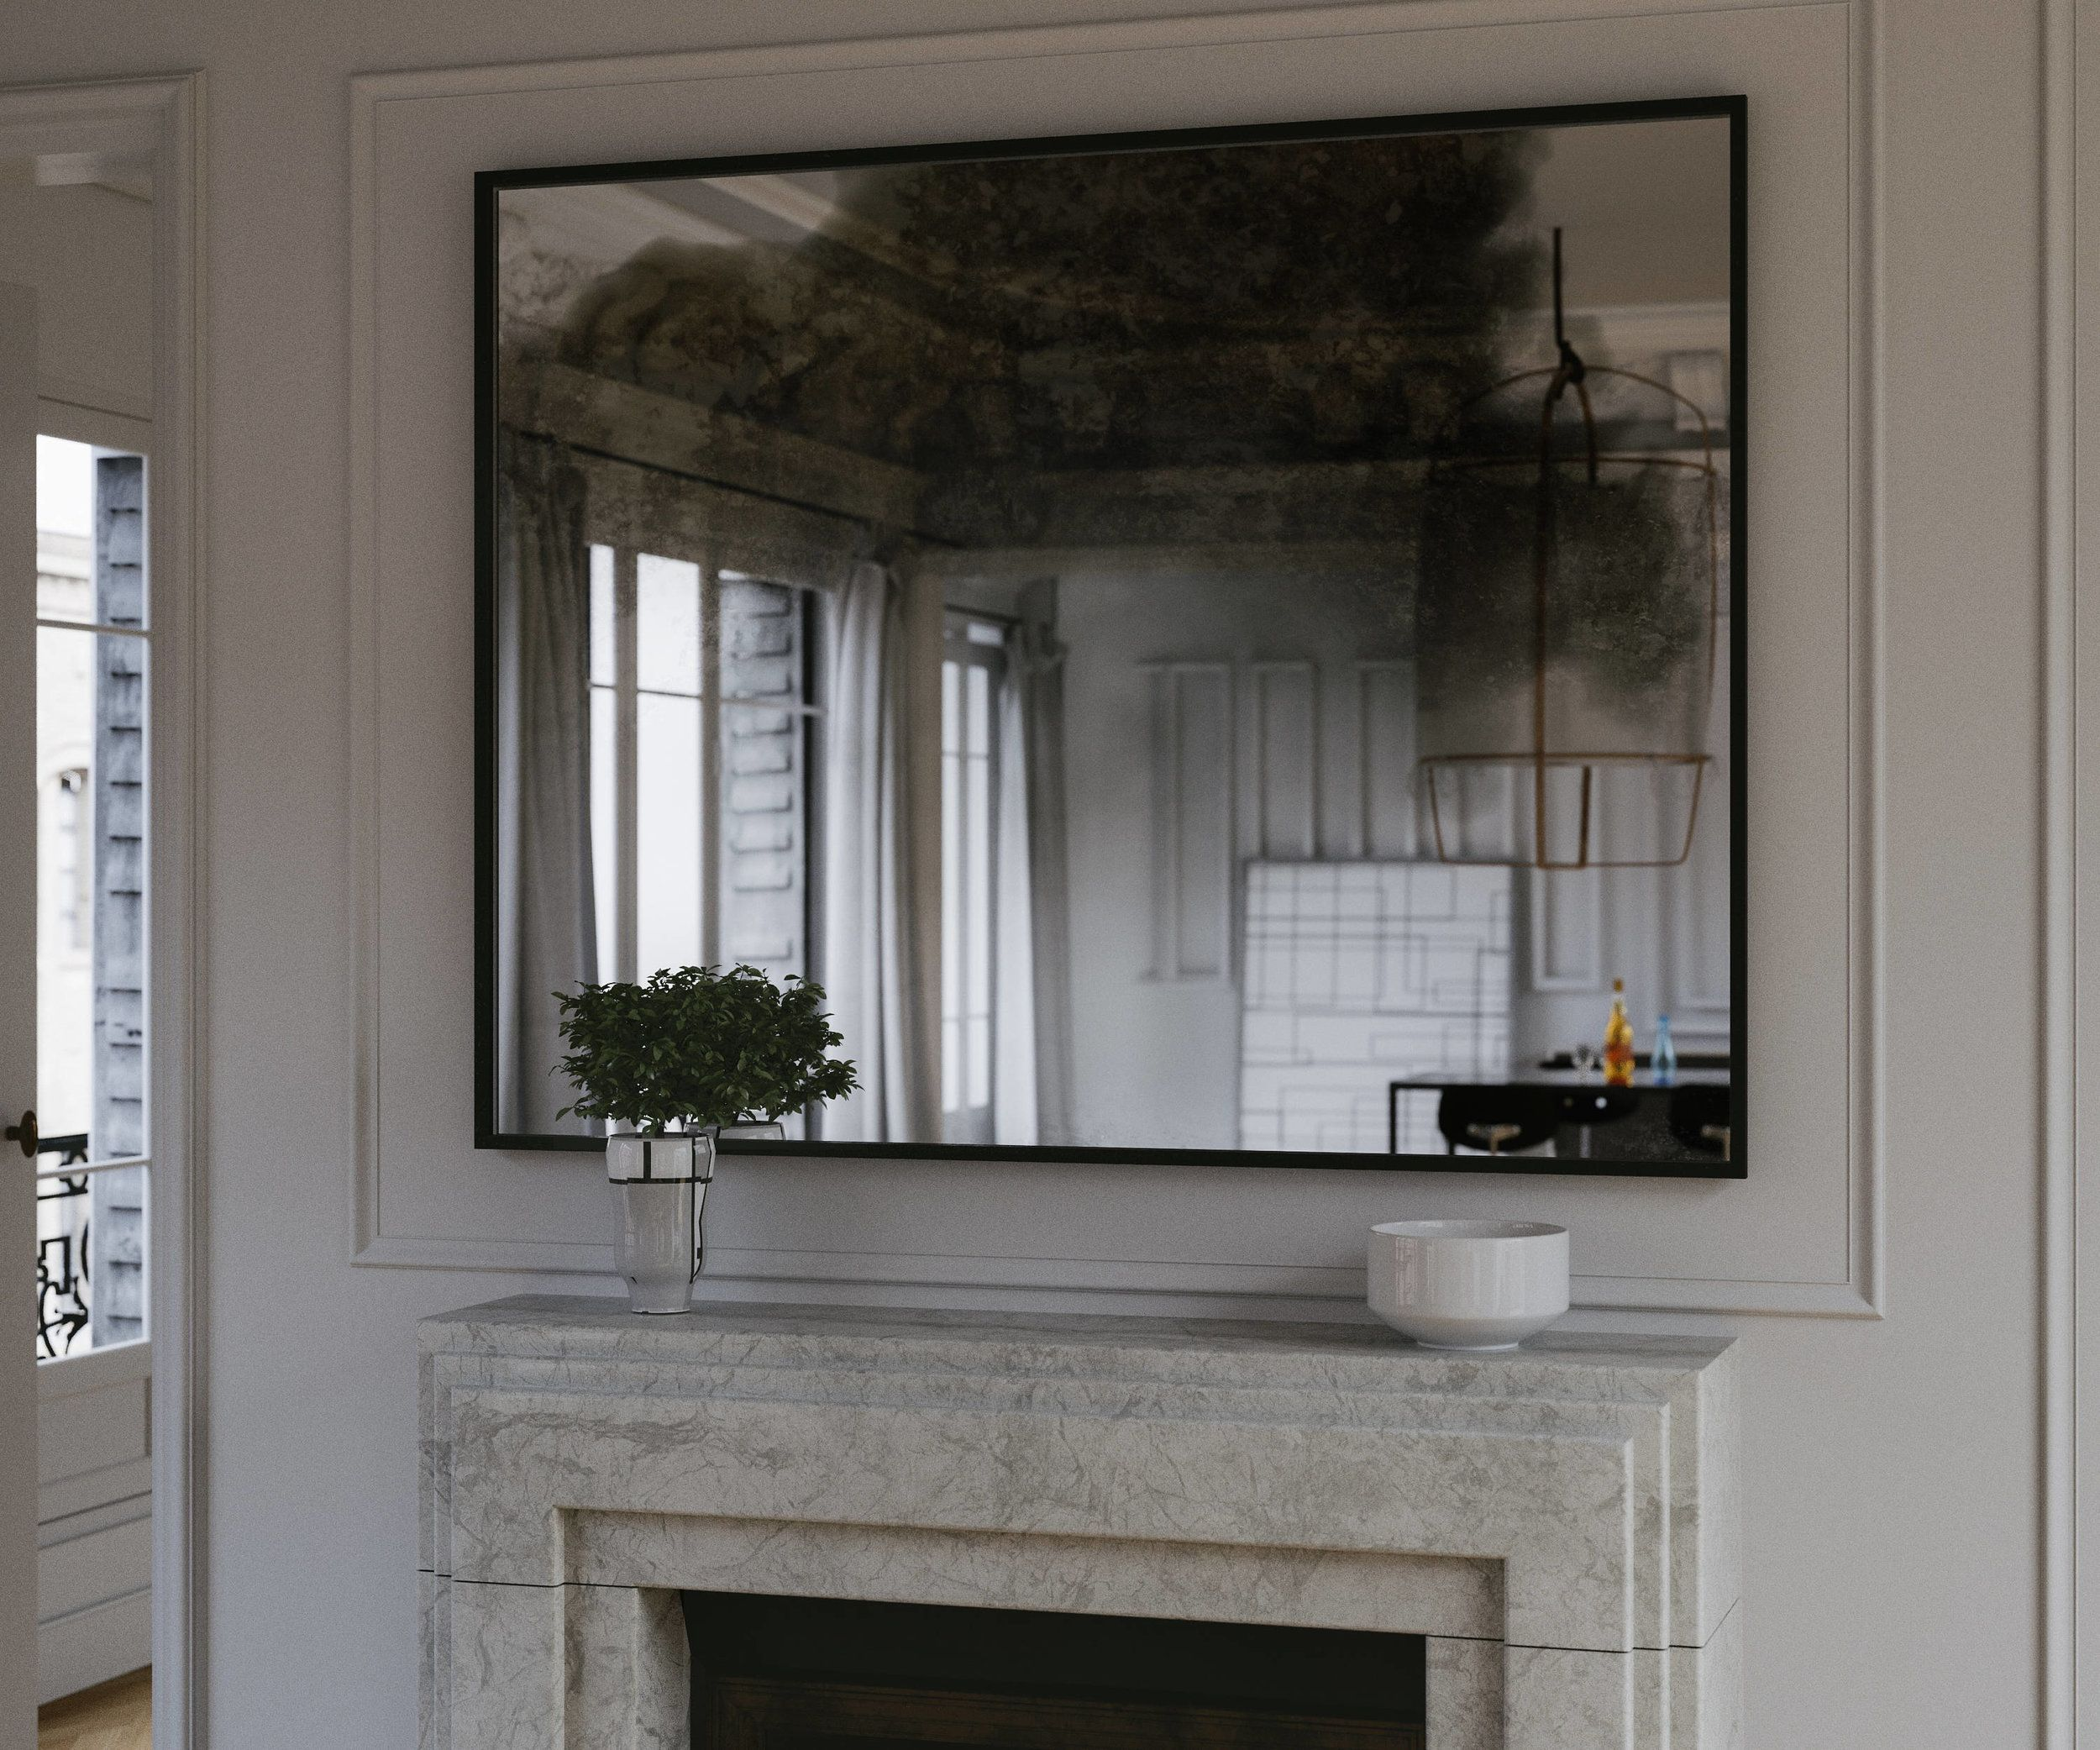 10 inconceivable wall mirror design ship lap ideas on ideas for decorating entryway contemporary wall mirrors id=21946